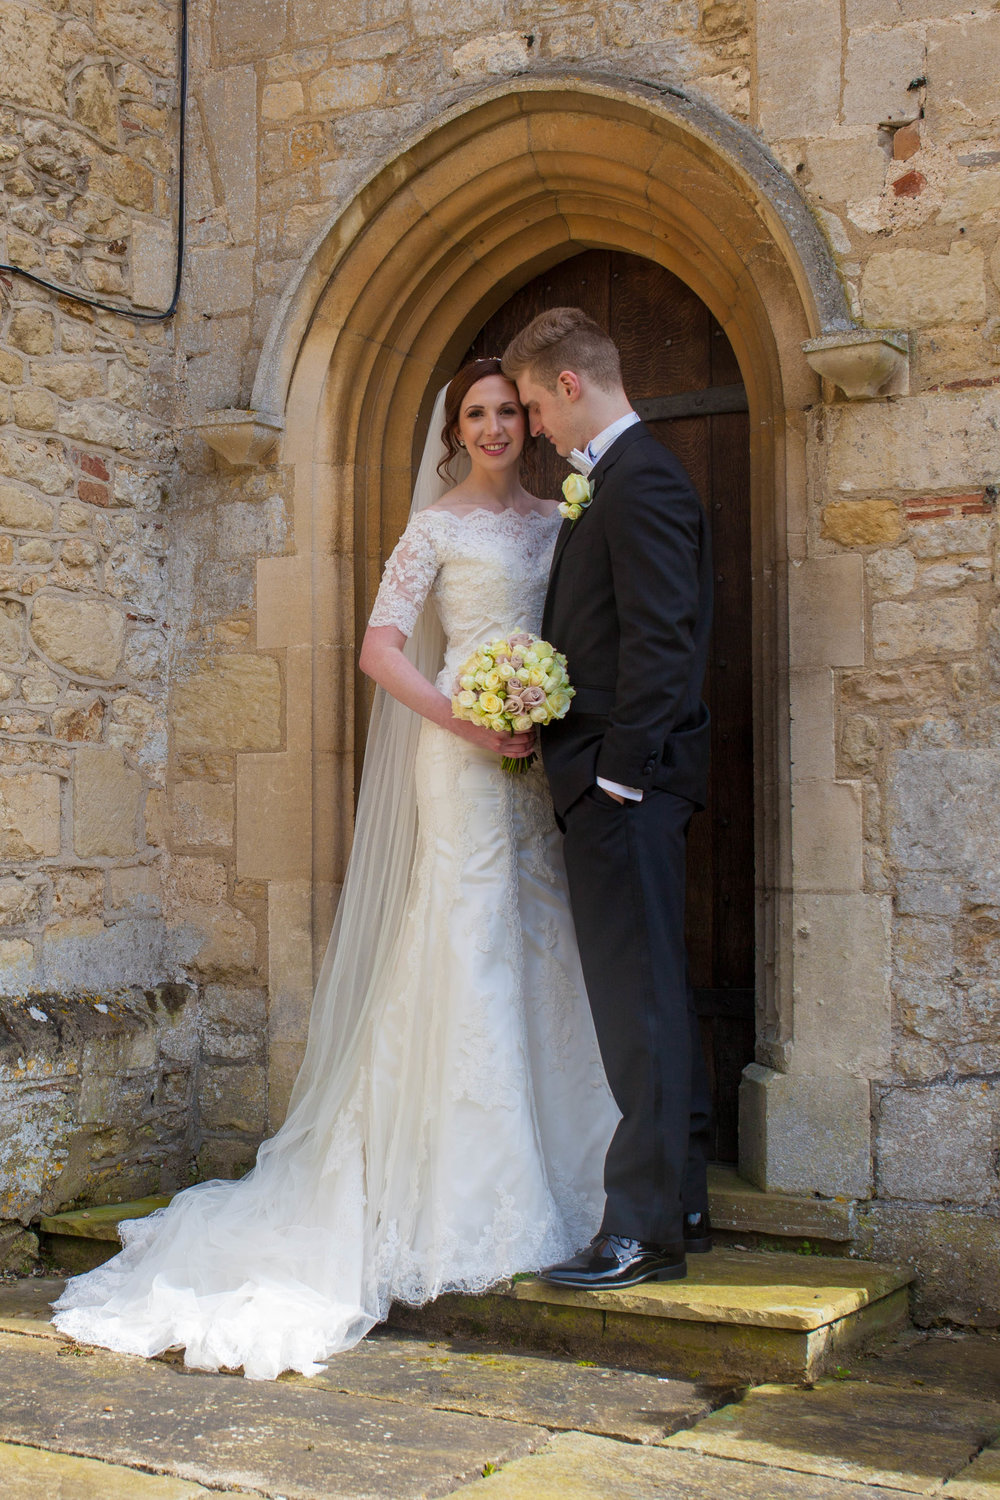 Notley_Abbey_Nick_Labrum_Photo_Kate&Matt-387.jpg